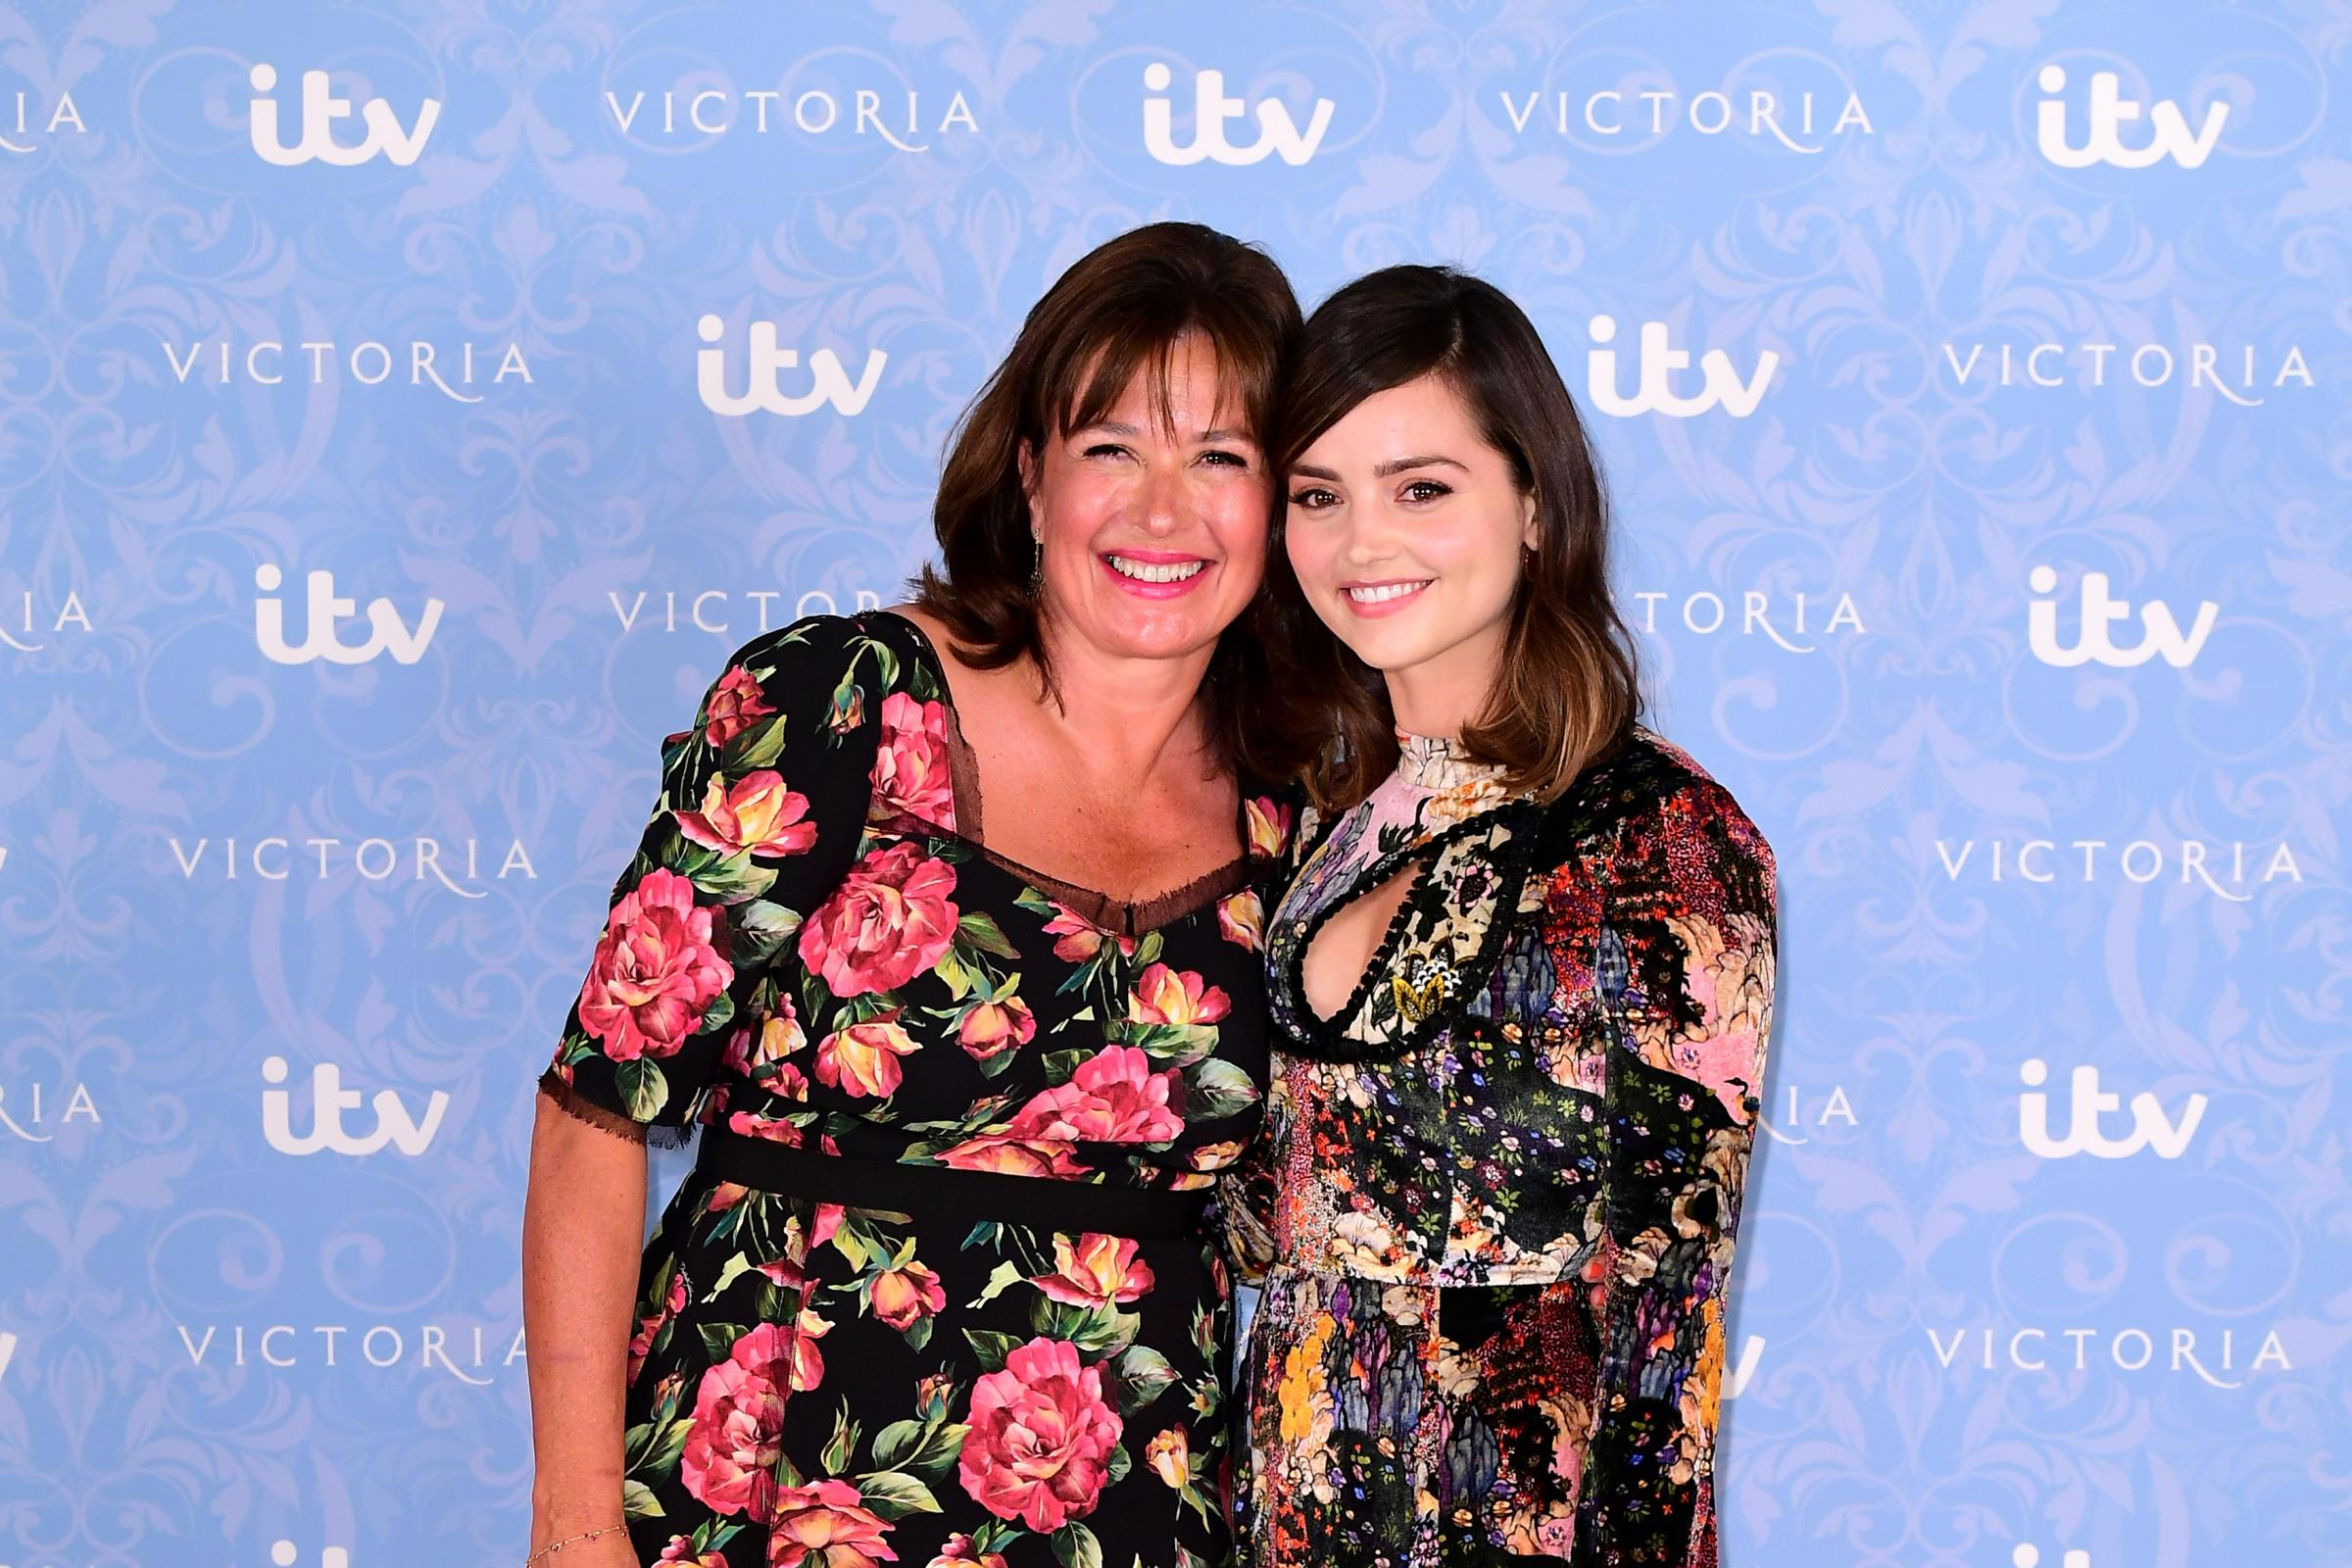 Daisy Goodwin with Jenna Coleman